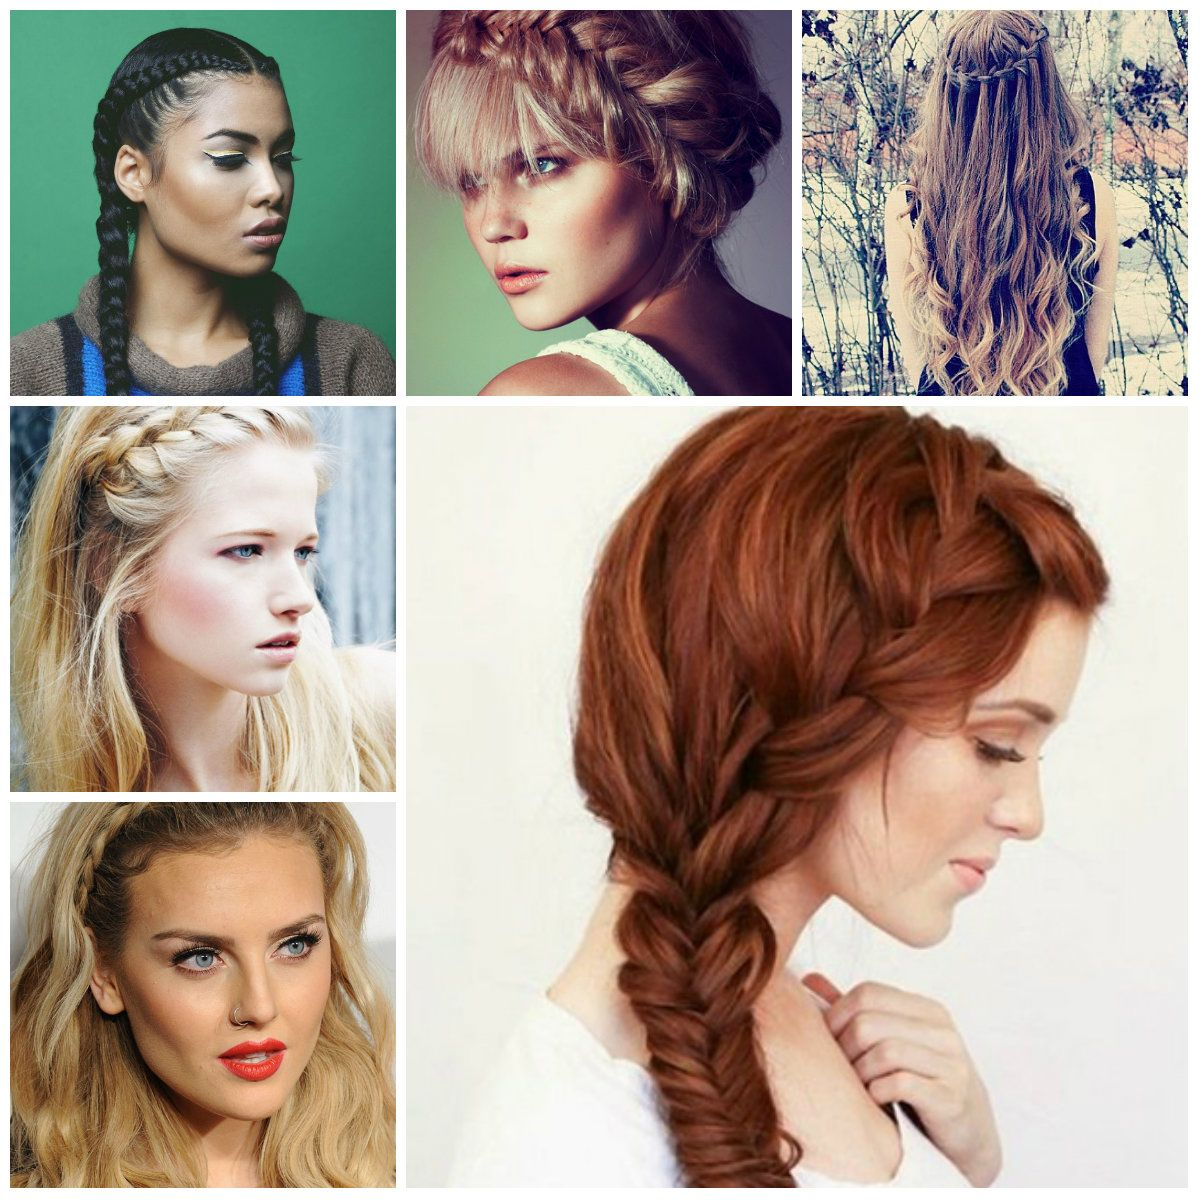 11 braided hairstyles for 2016 | trendy hairstyles 2015 / 2016 for